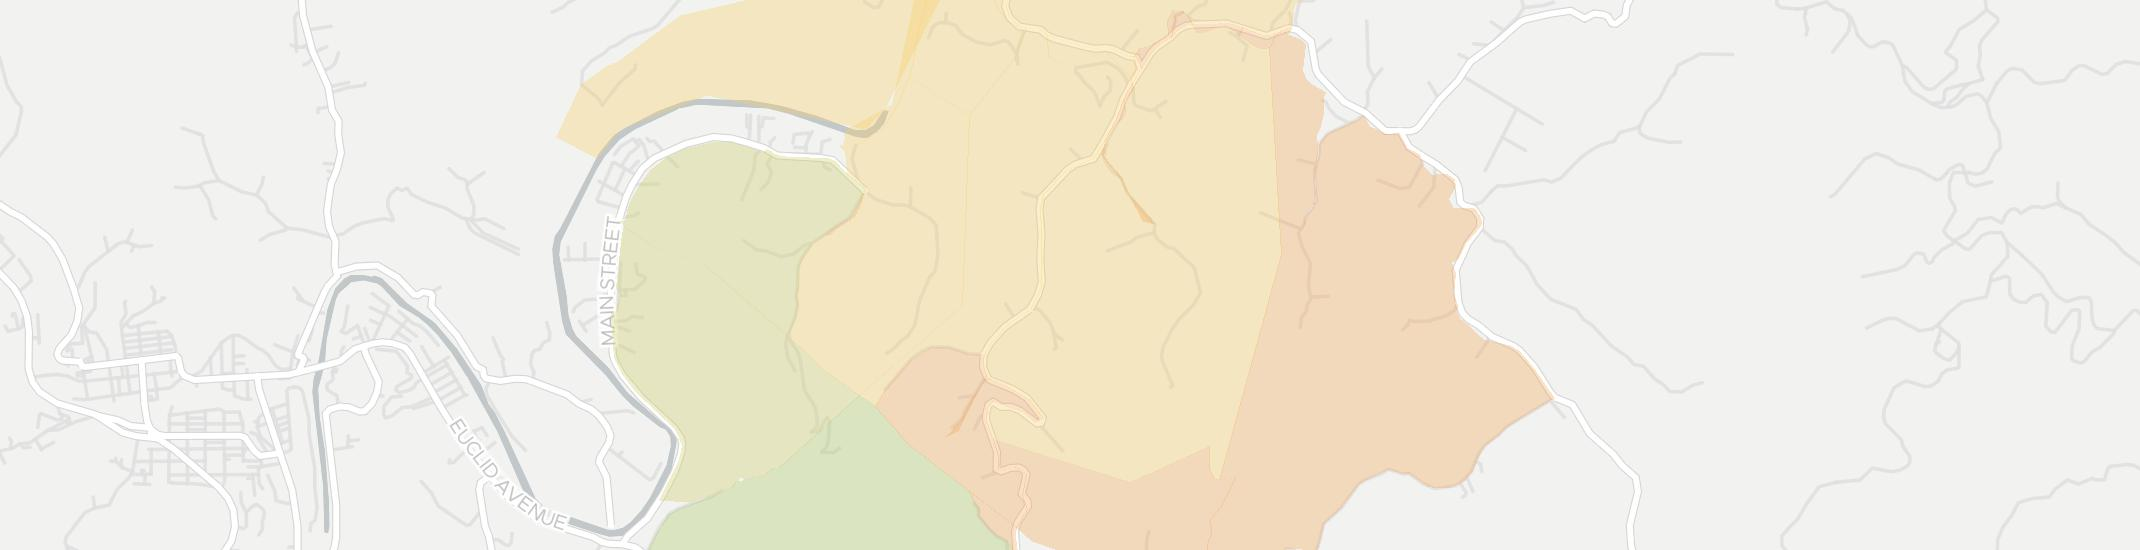 Williamsport Internet Competition Map. Click for interactive map.